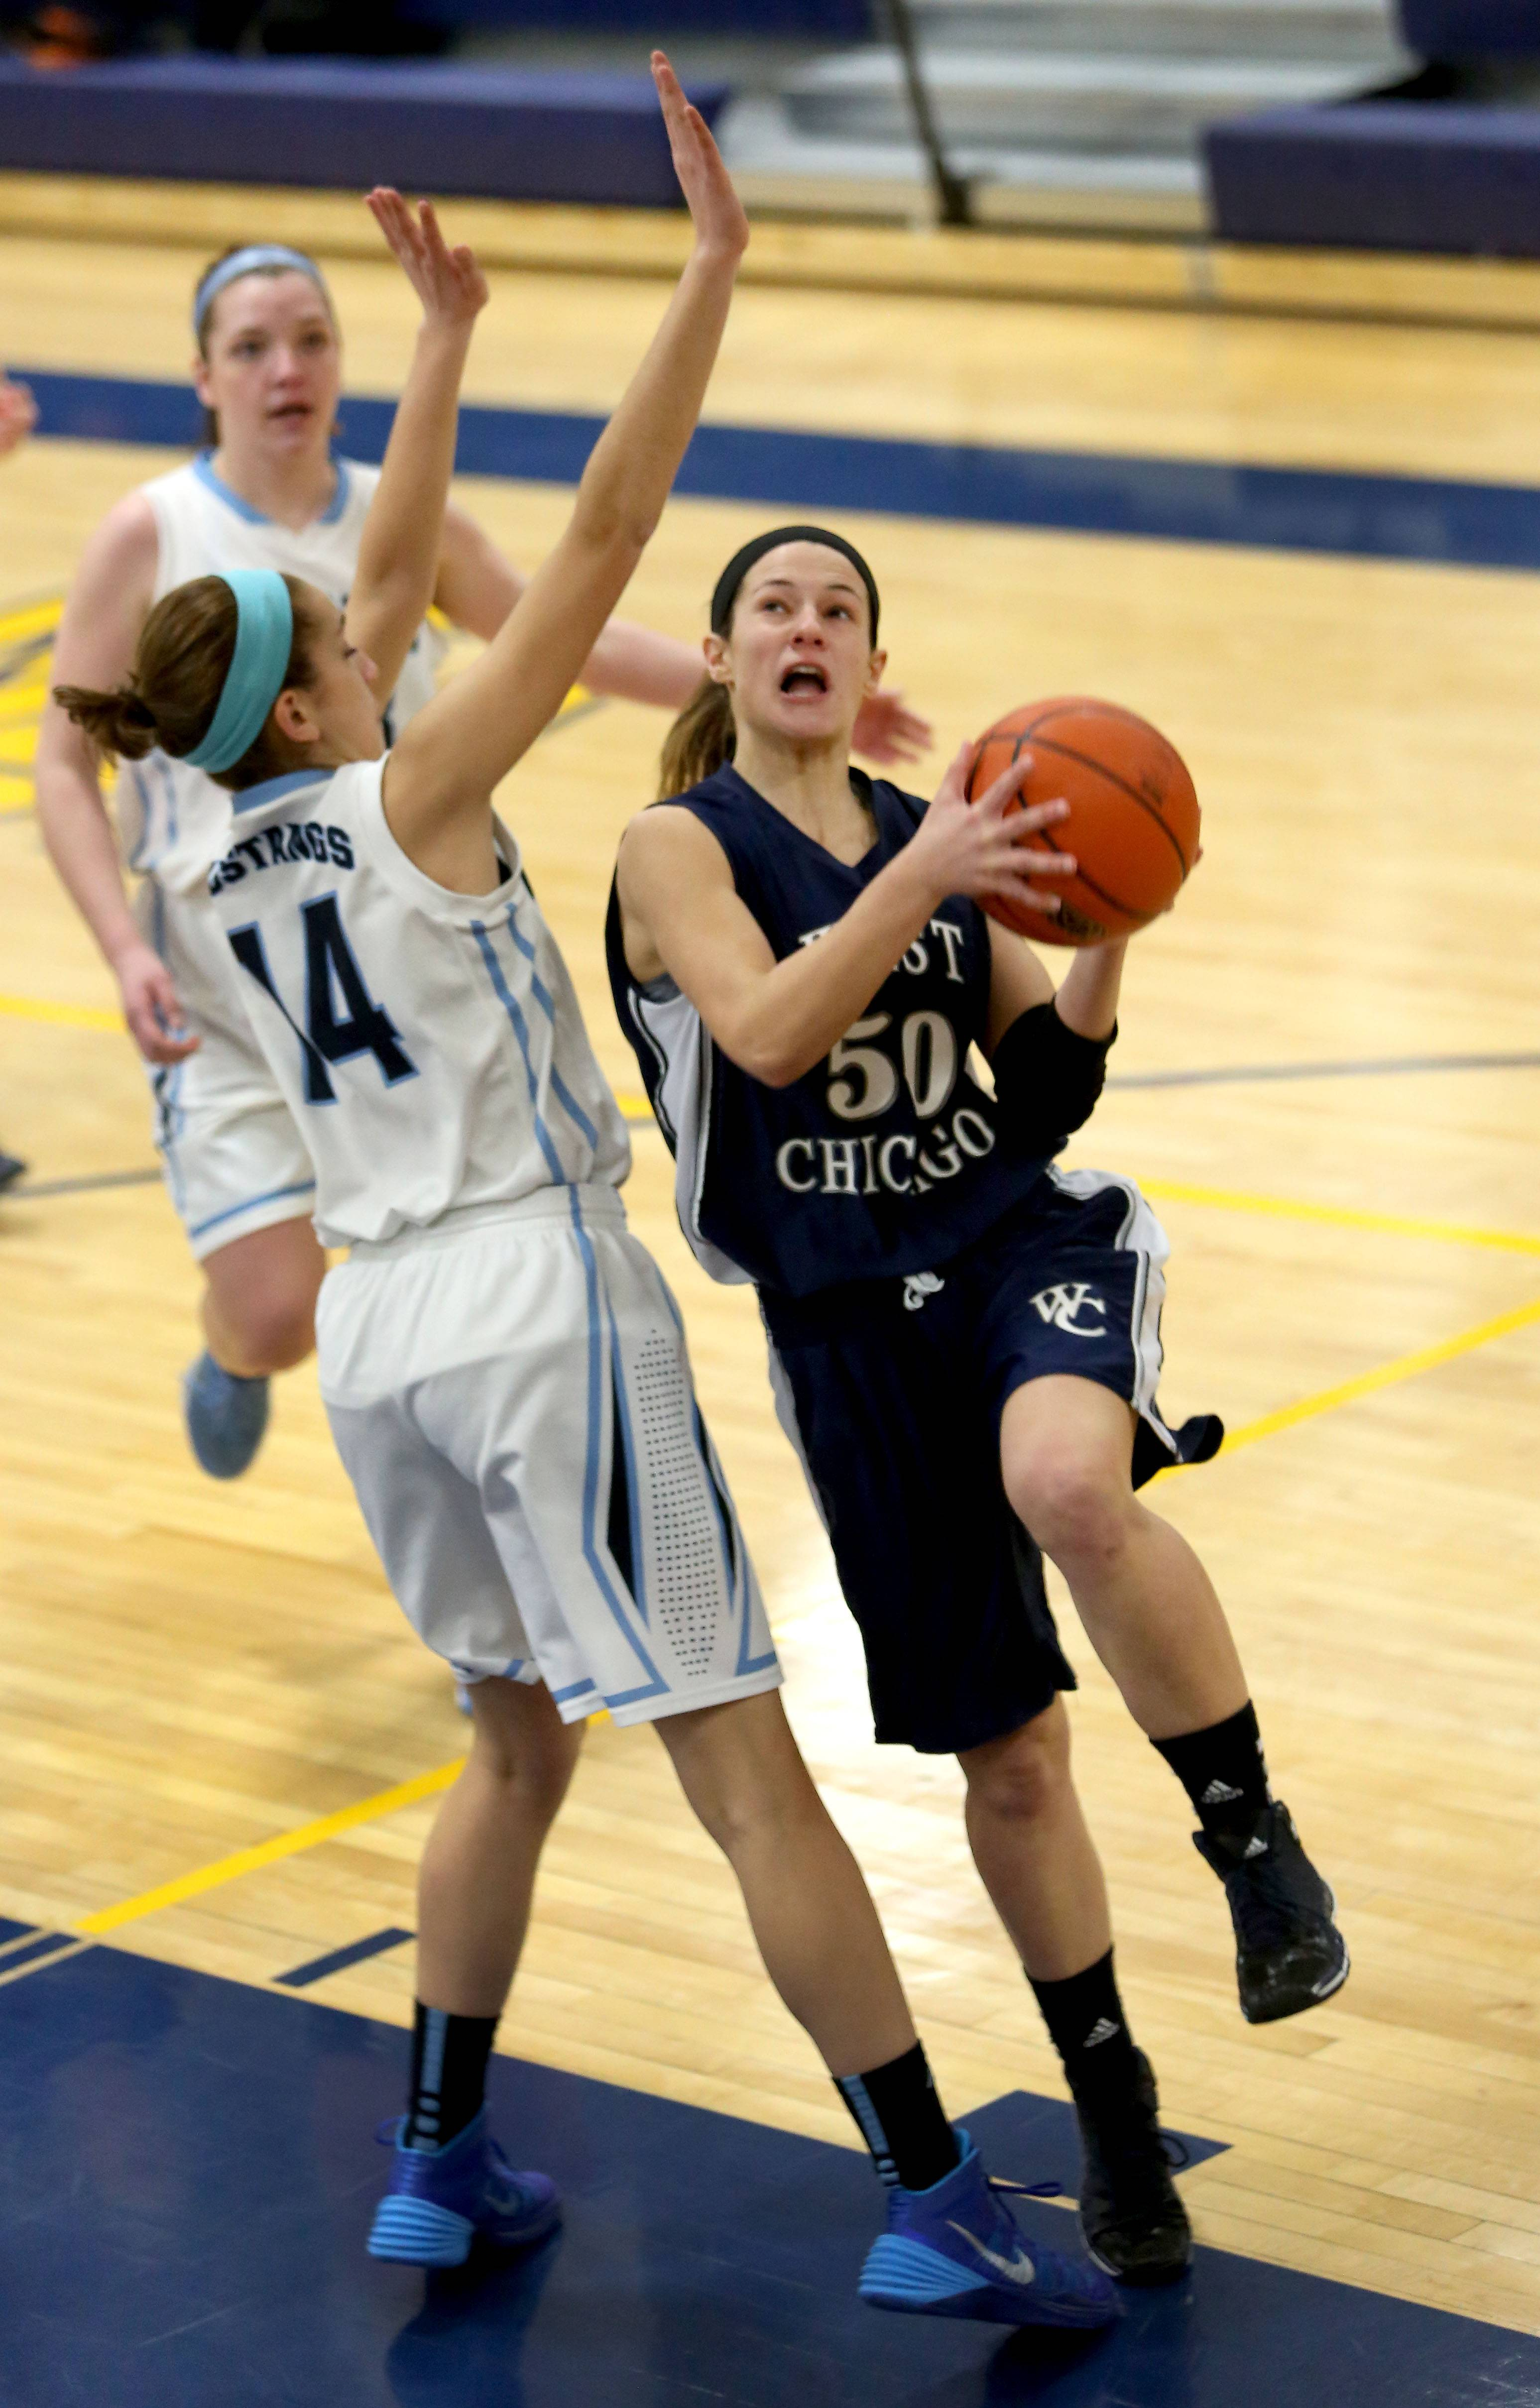 Downers Grove South ousts West Chicago